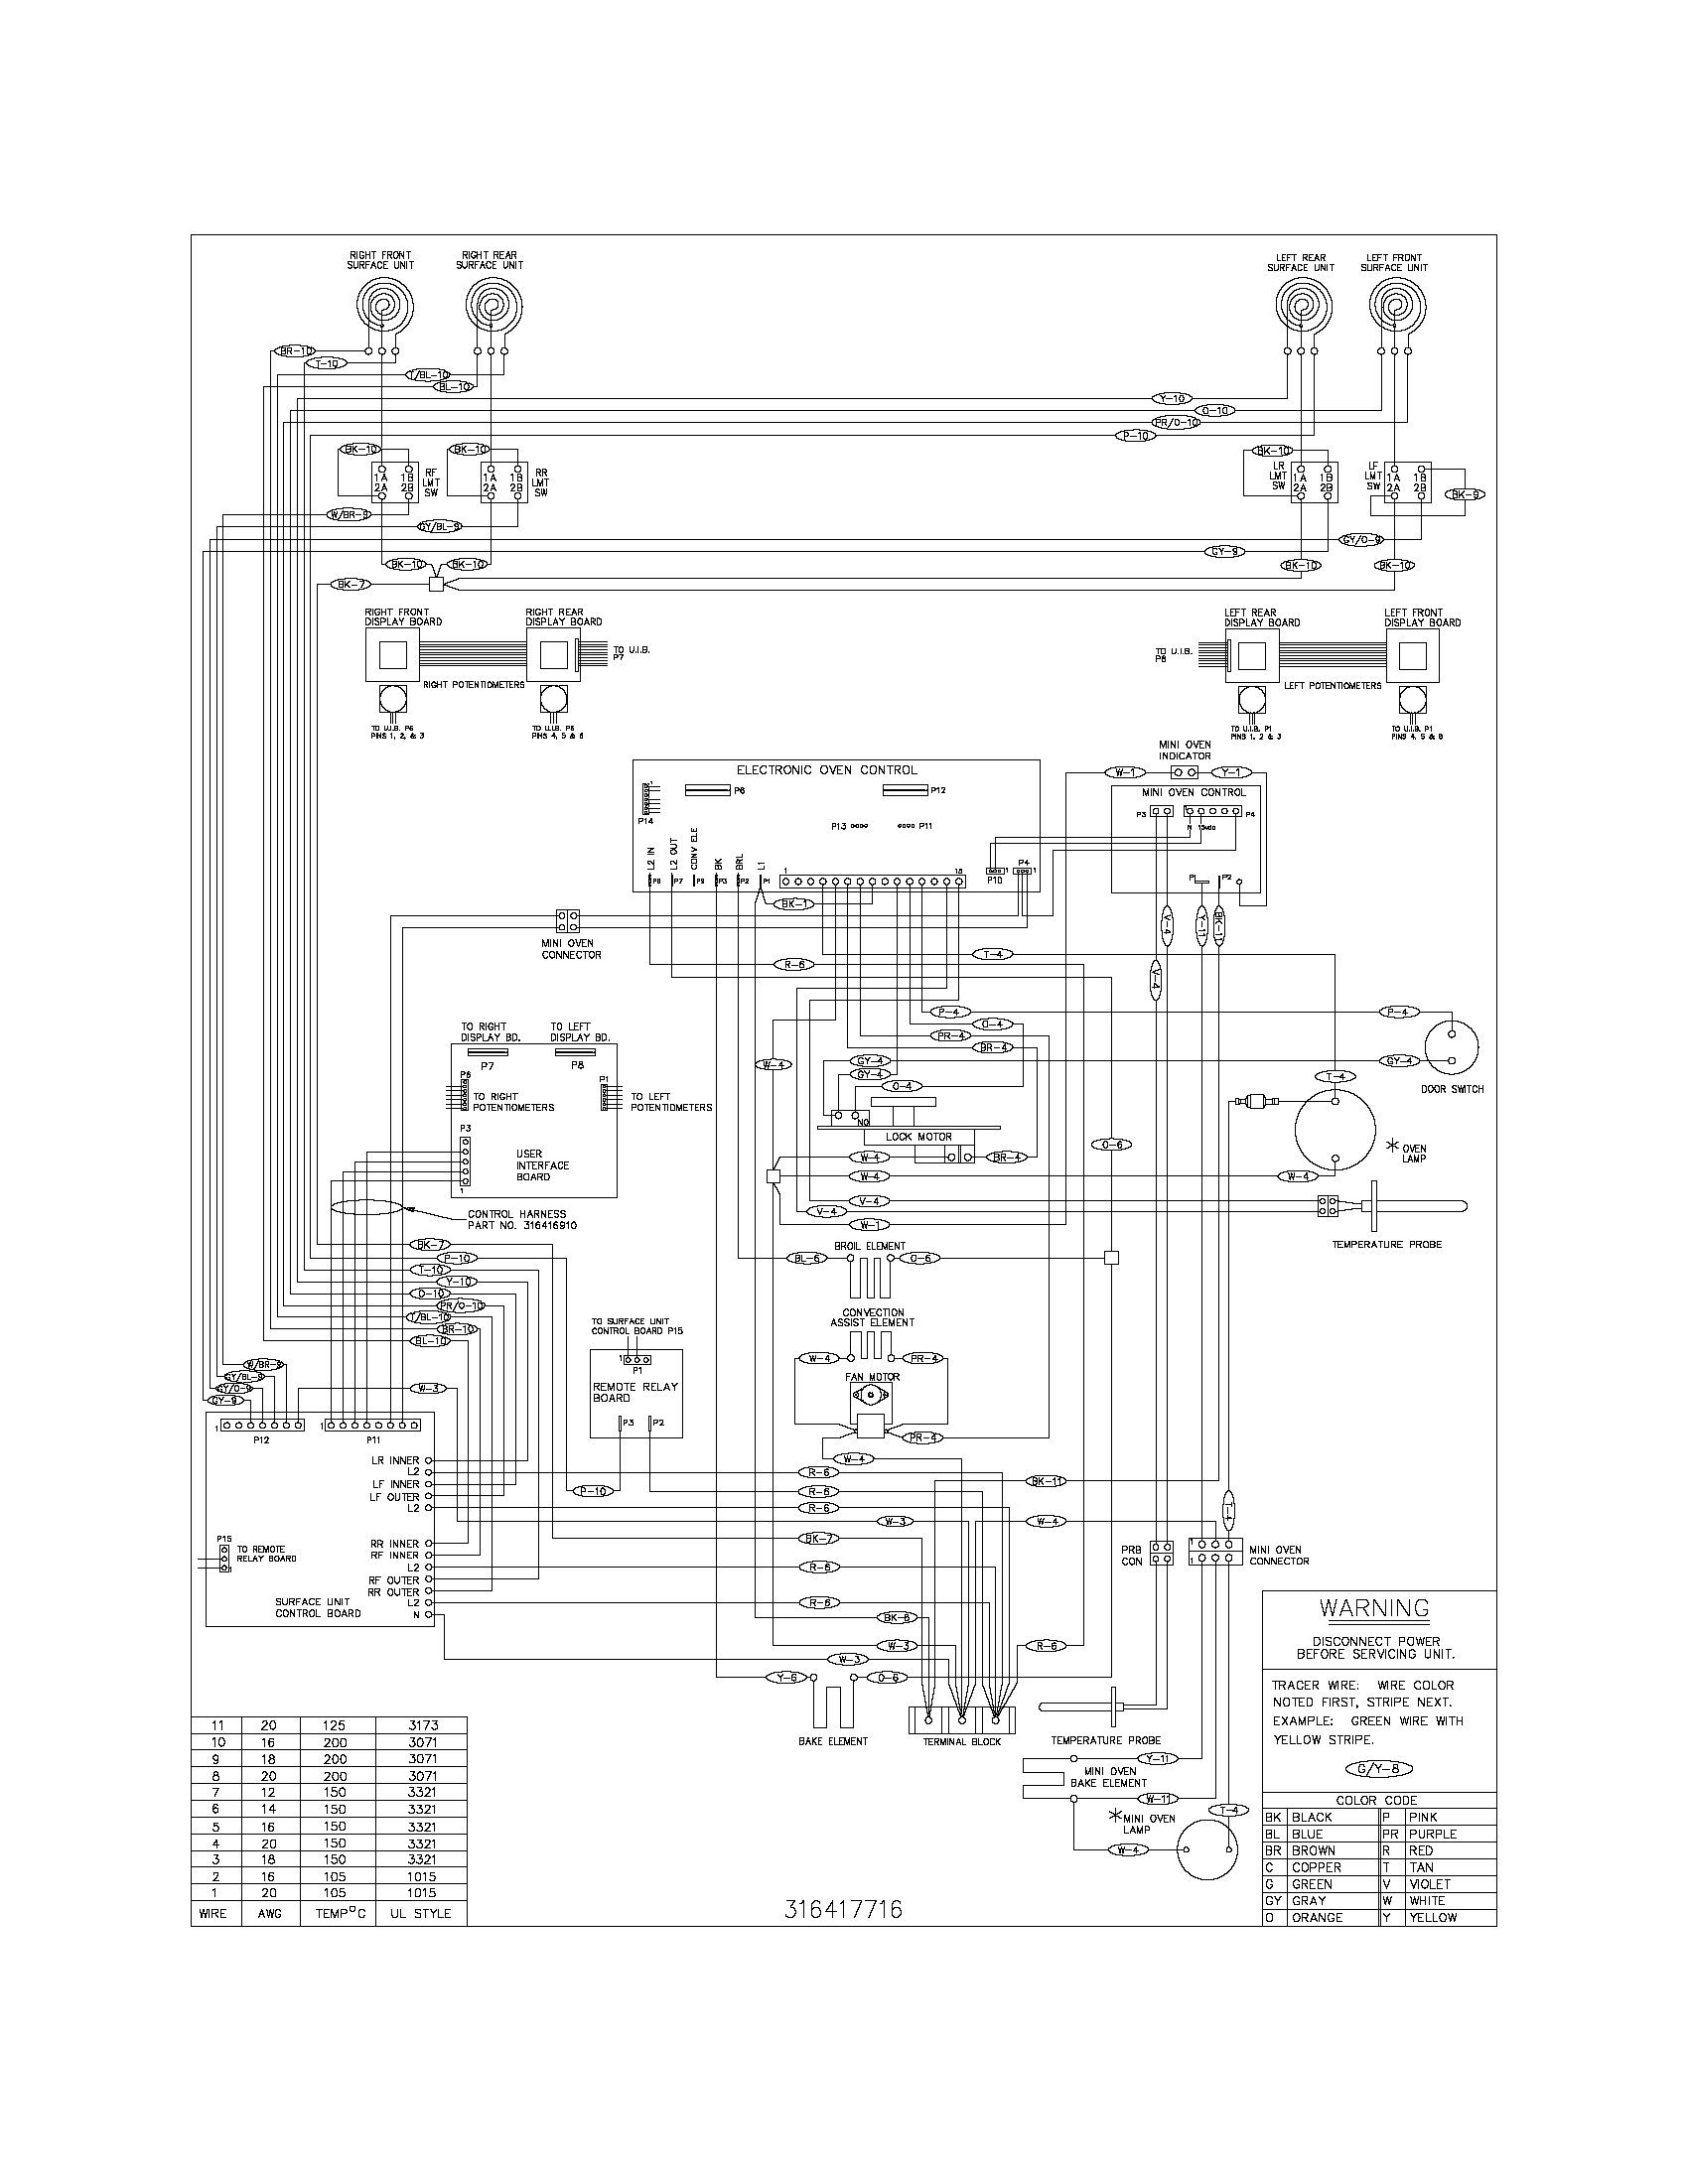 Amazing Cat 6 568c Cable Heil Furnace Wiring Schematics Outboard ...